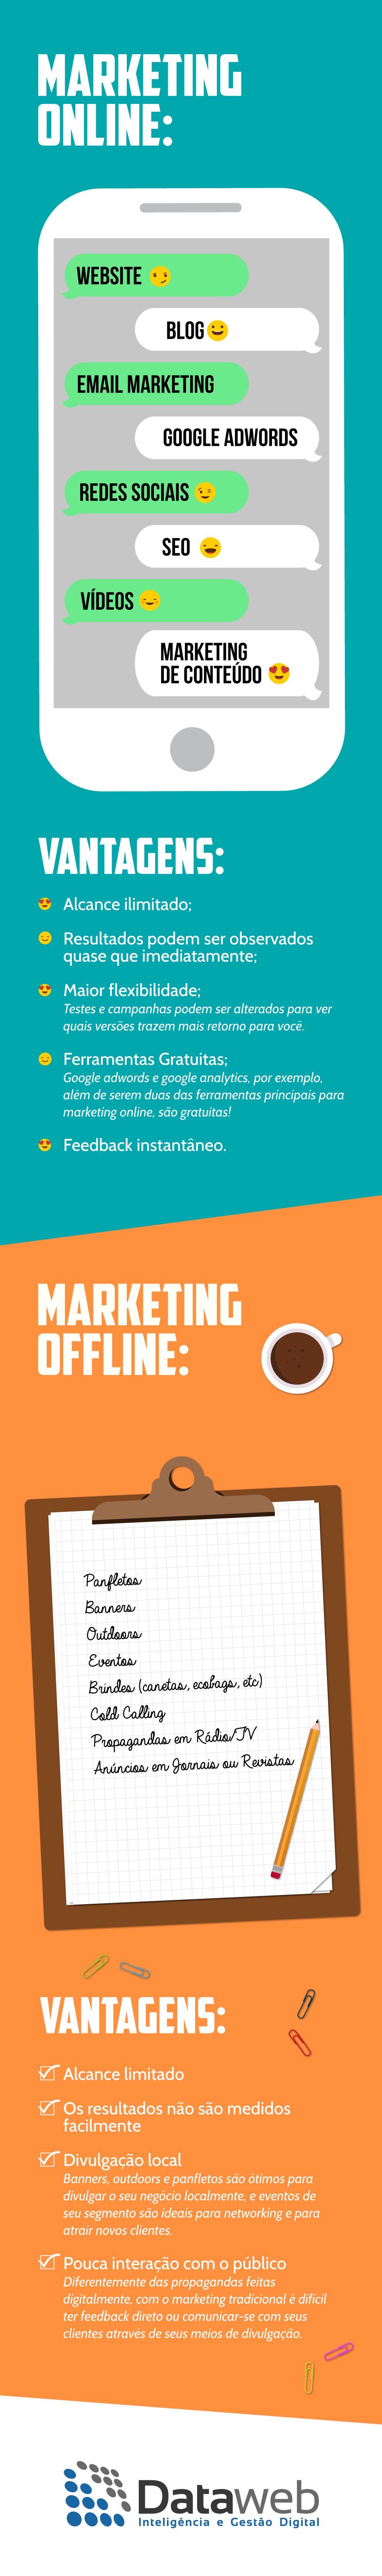 infográfico marketing digital vs marketing tradicional